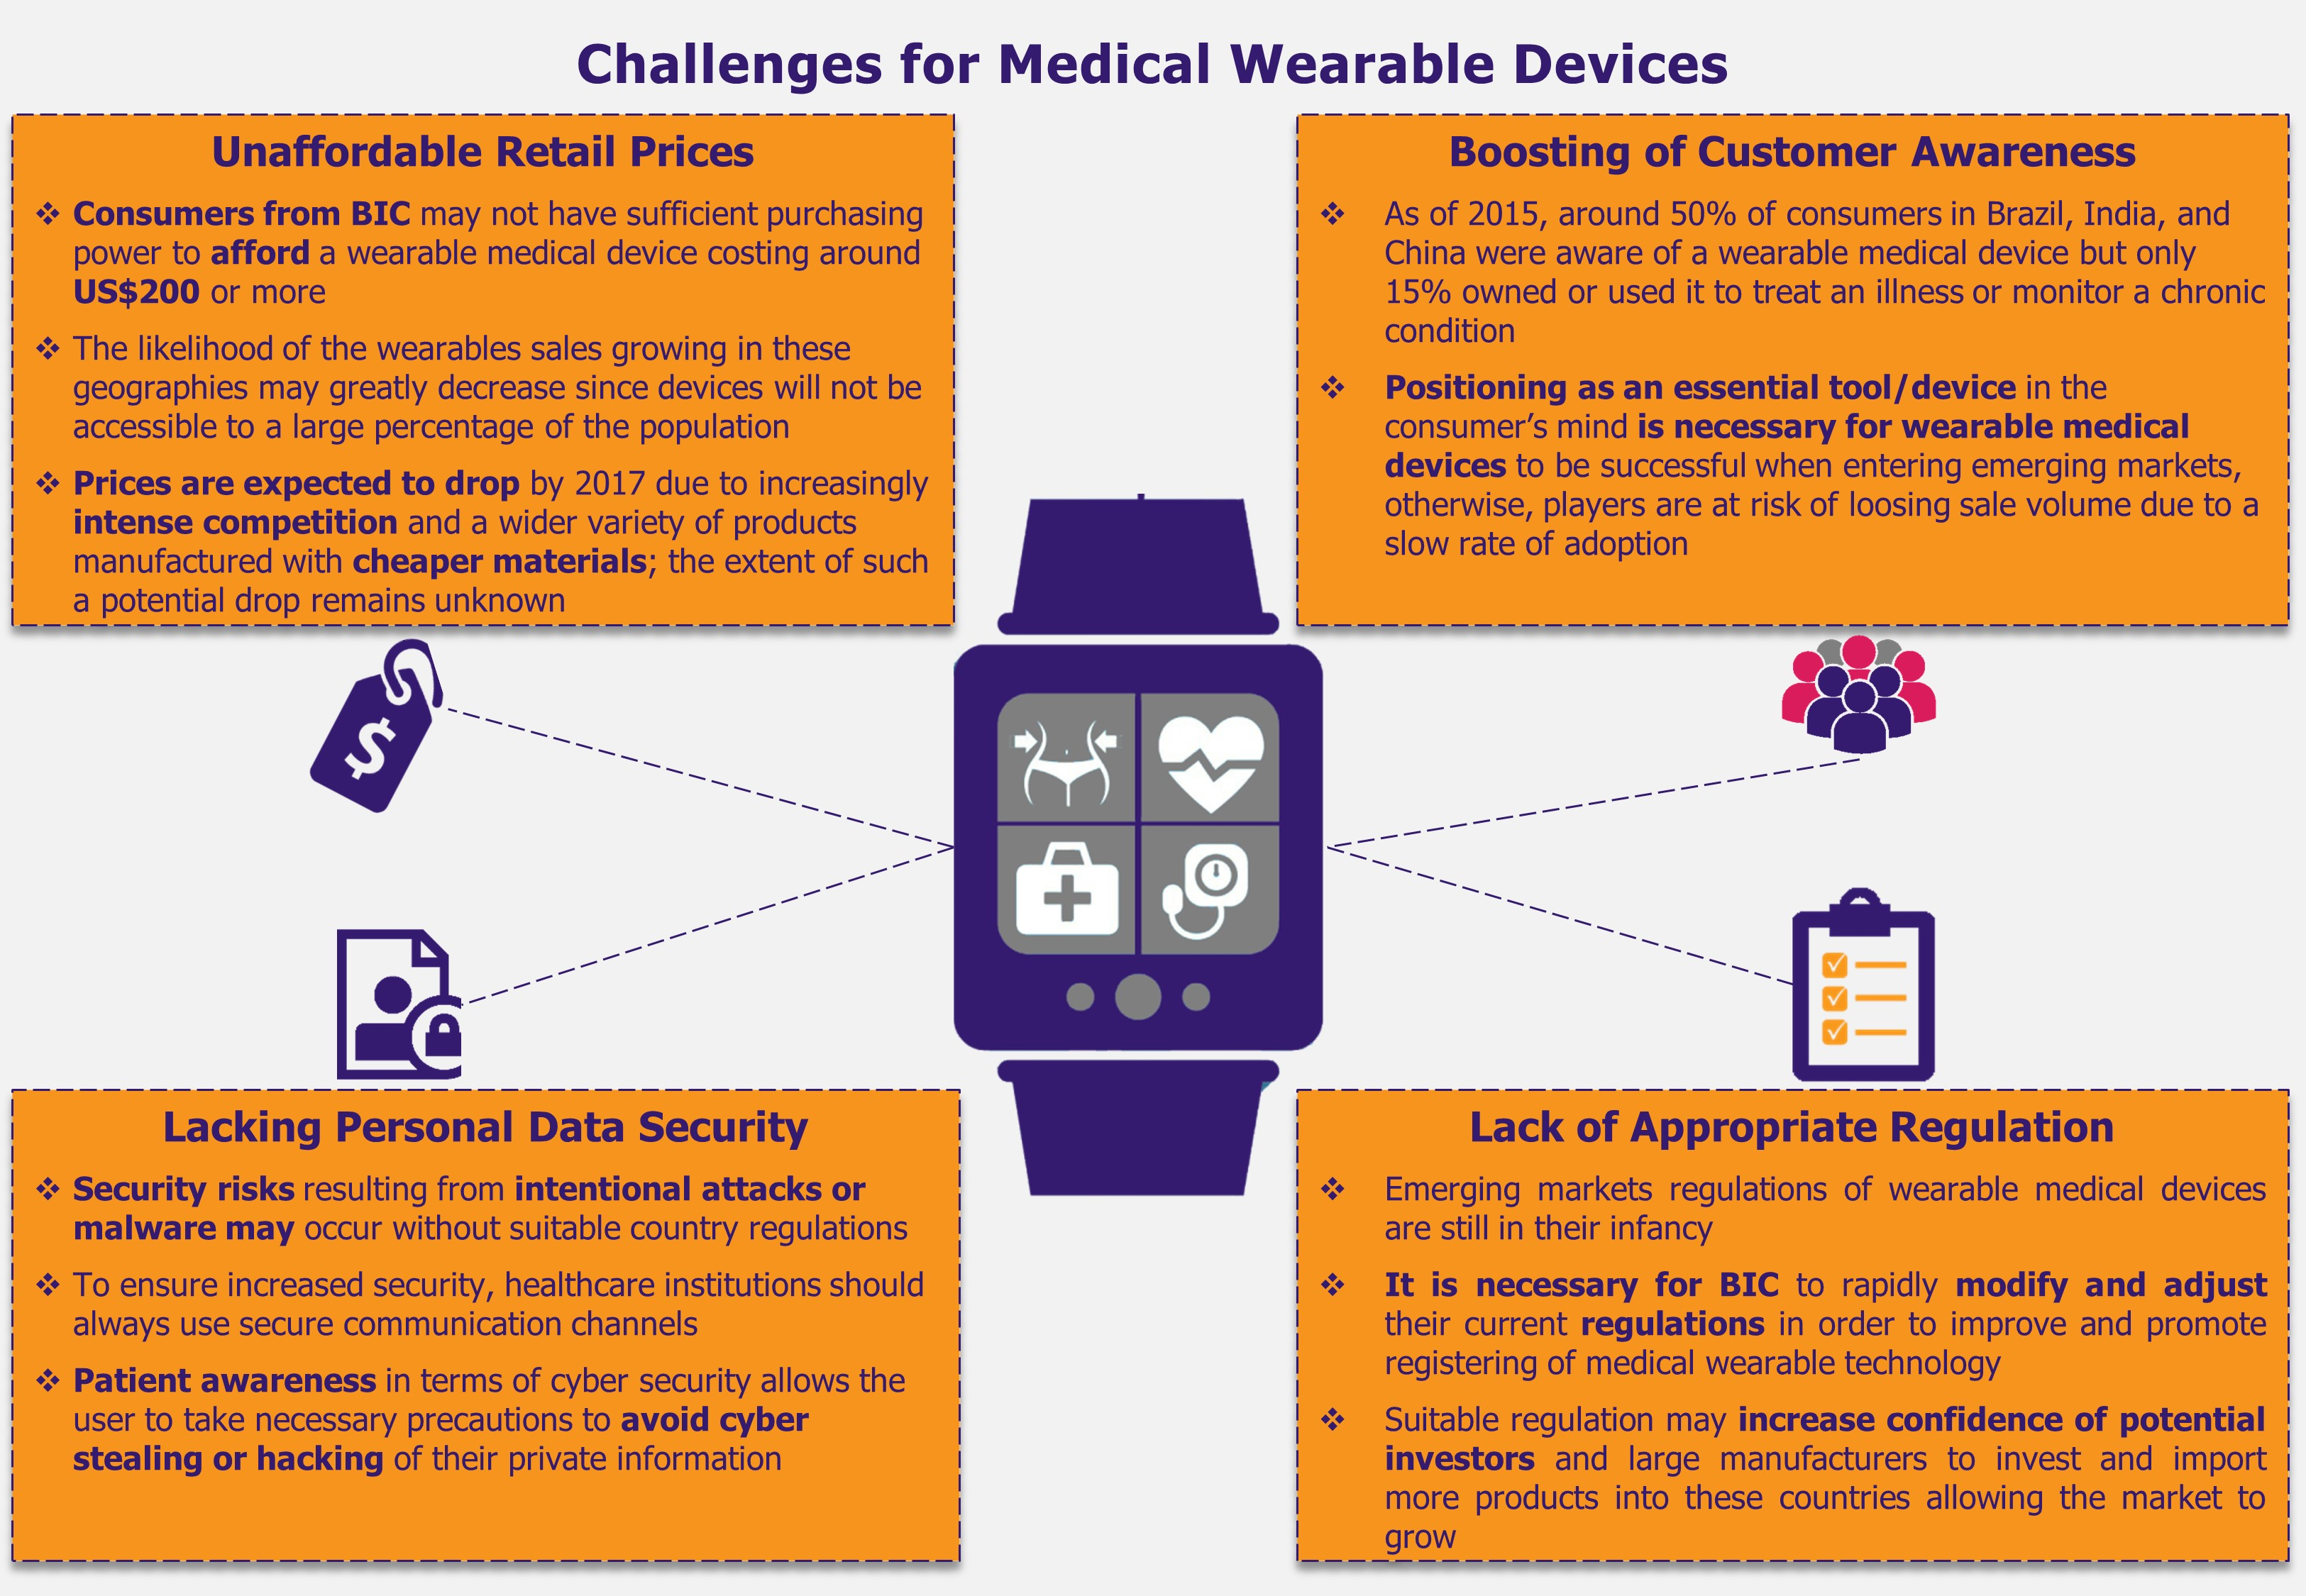 Wearable Medical Devices in India, Brazil, and China - Challenges